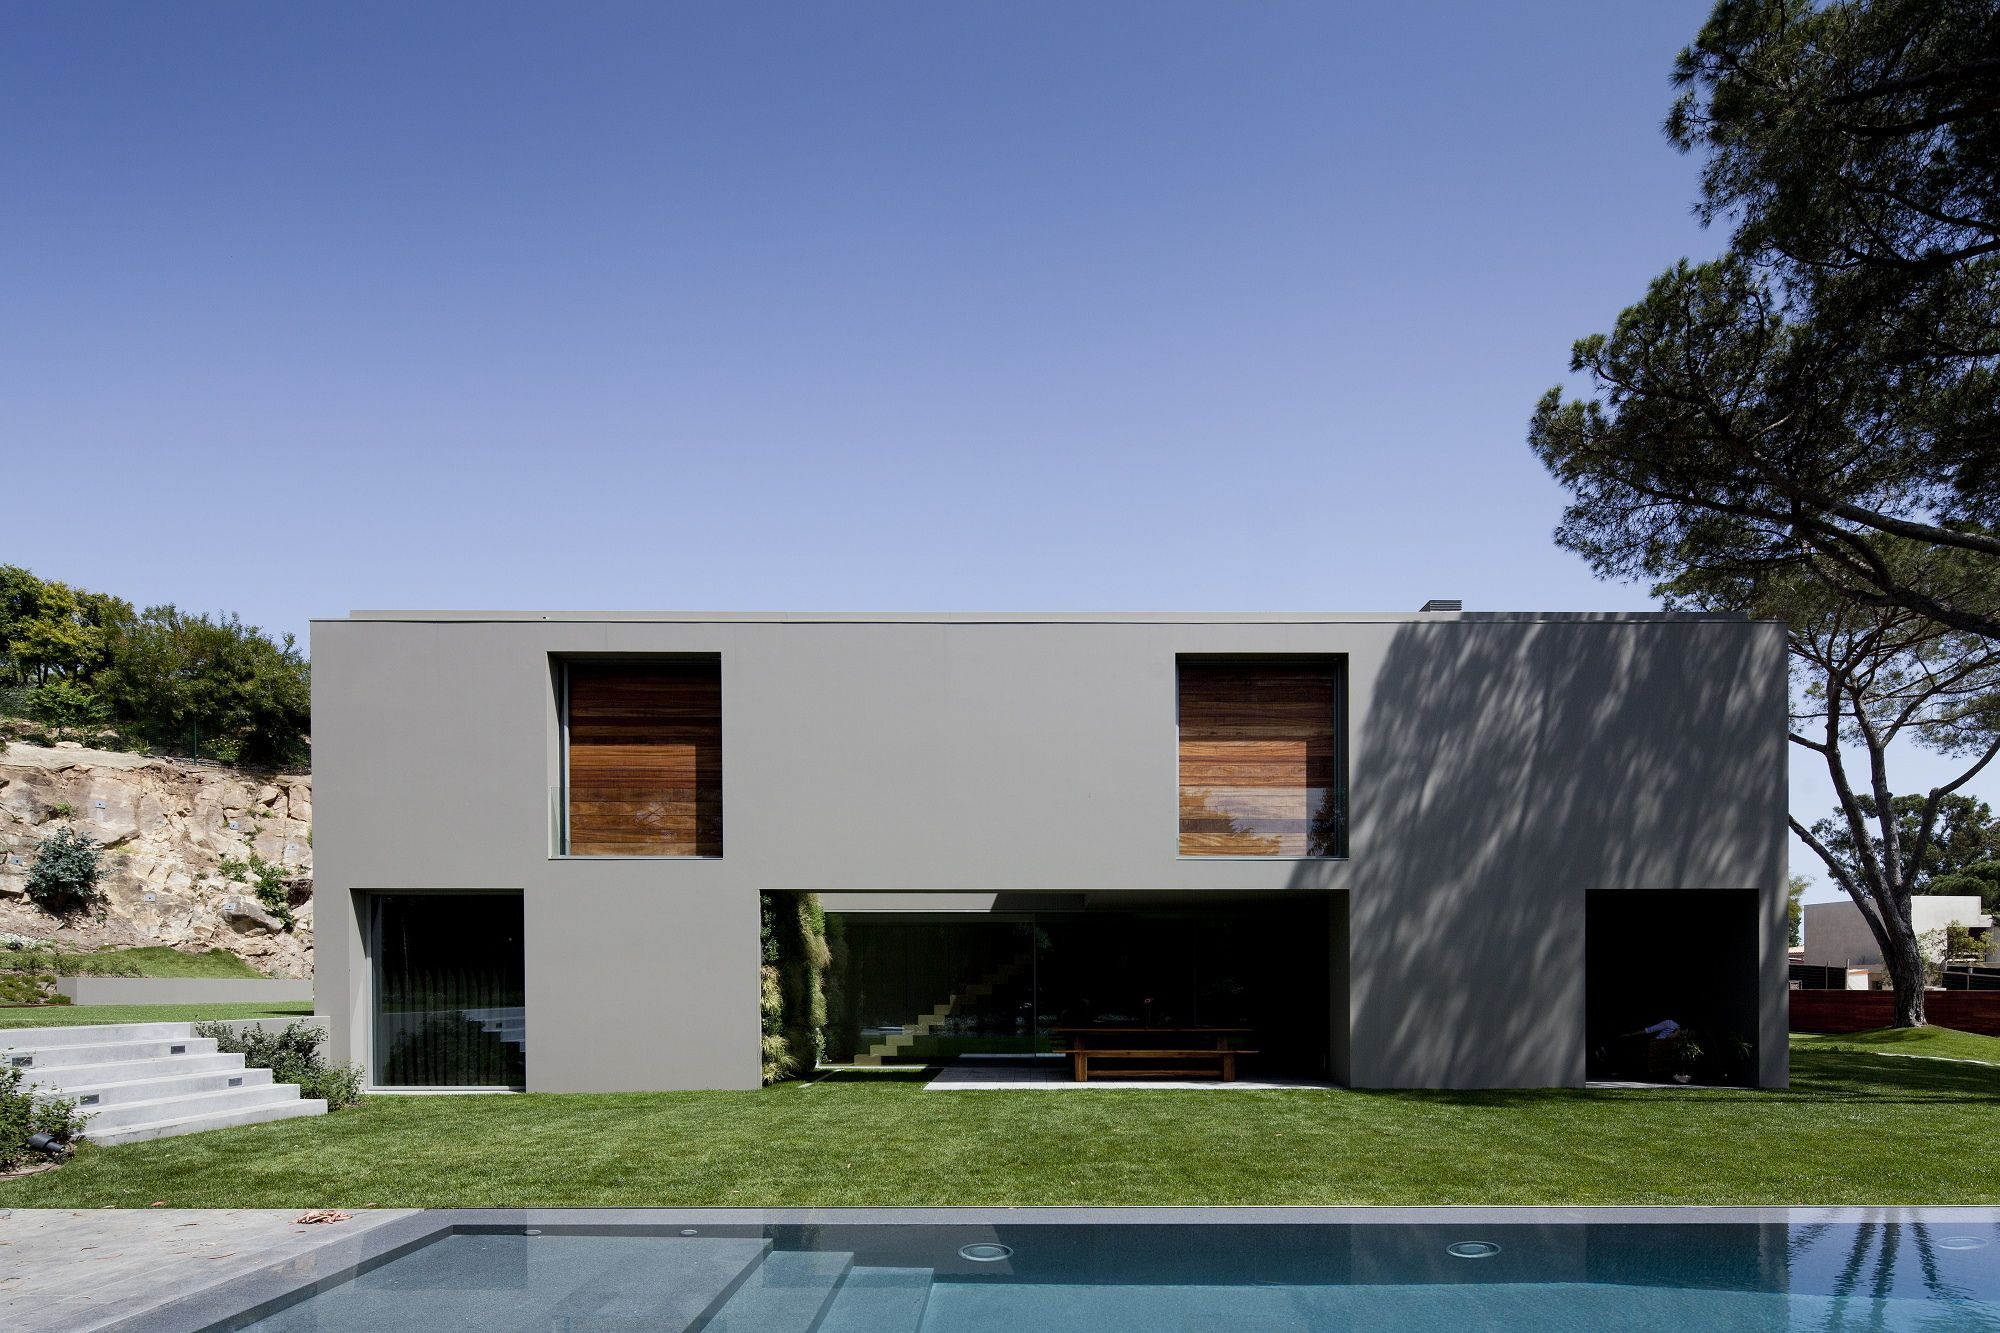 Gallery of house in quinta patino frederico valsassina arquitectos 6